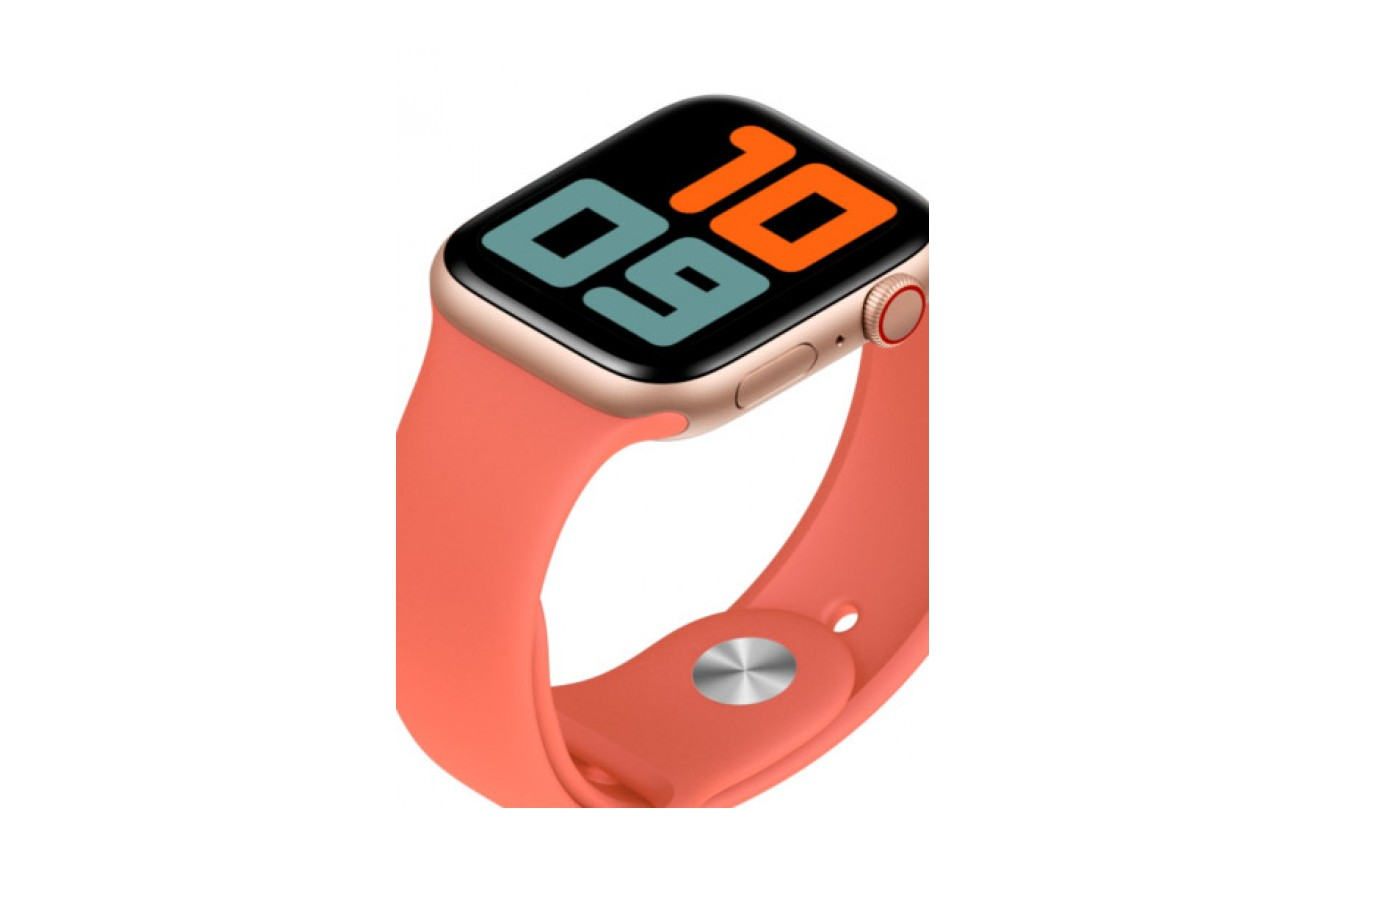 The Apple Series 5 watch has an onboard ECG app.